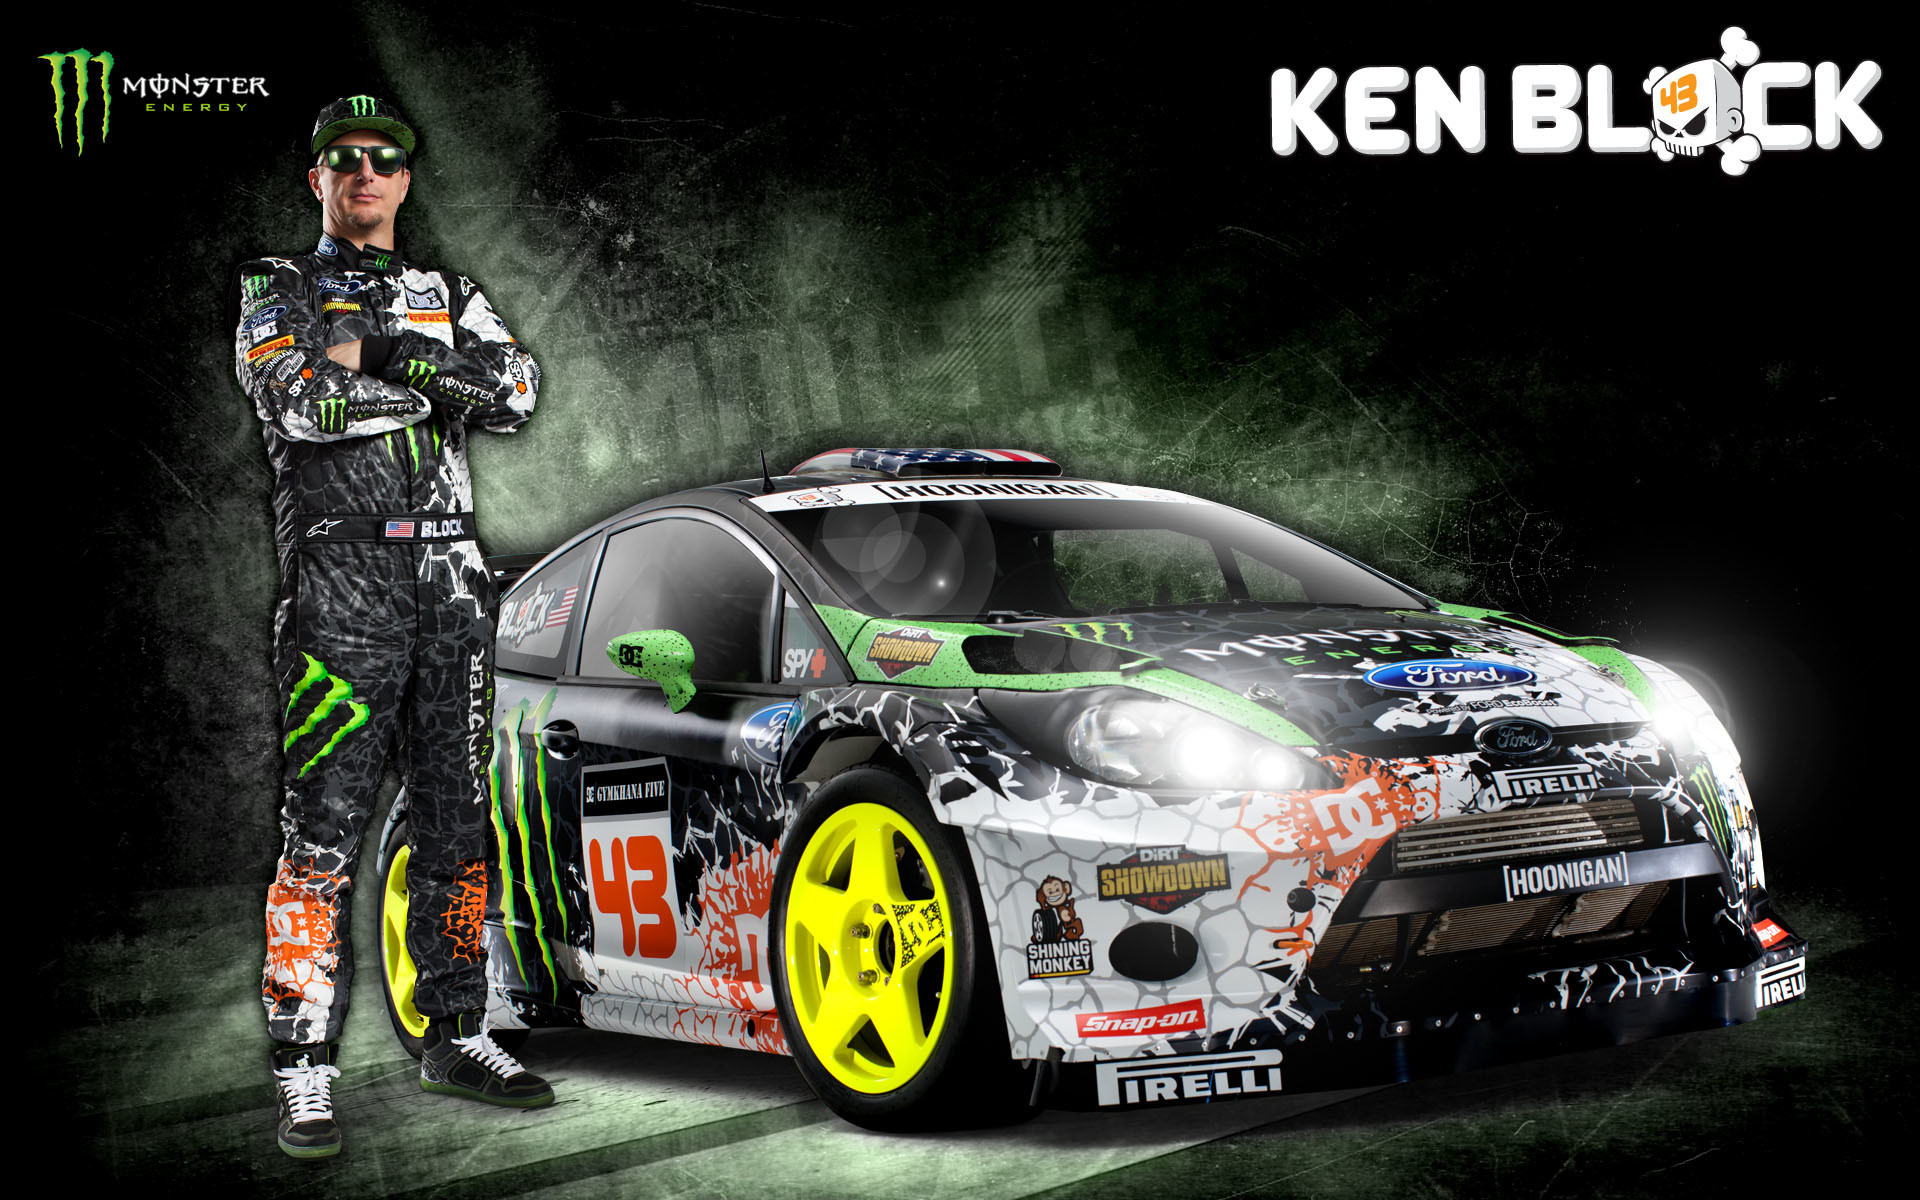 Ken Block 2018 Wallpaper 183 ① Wallpapertag